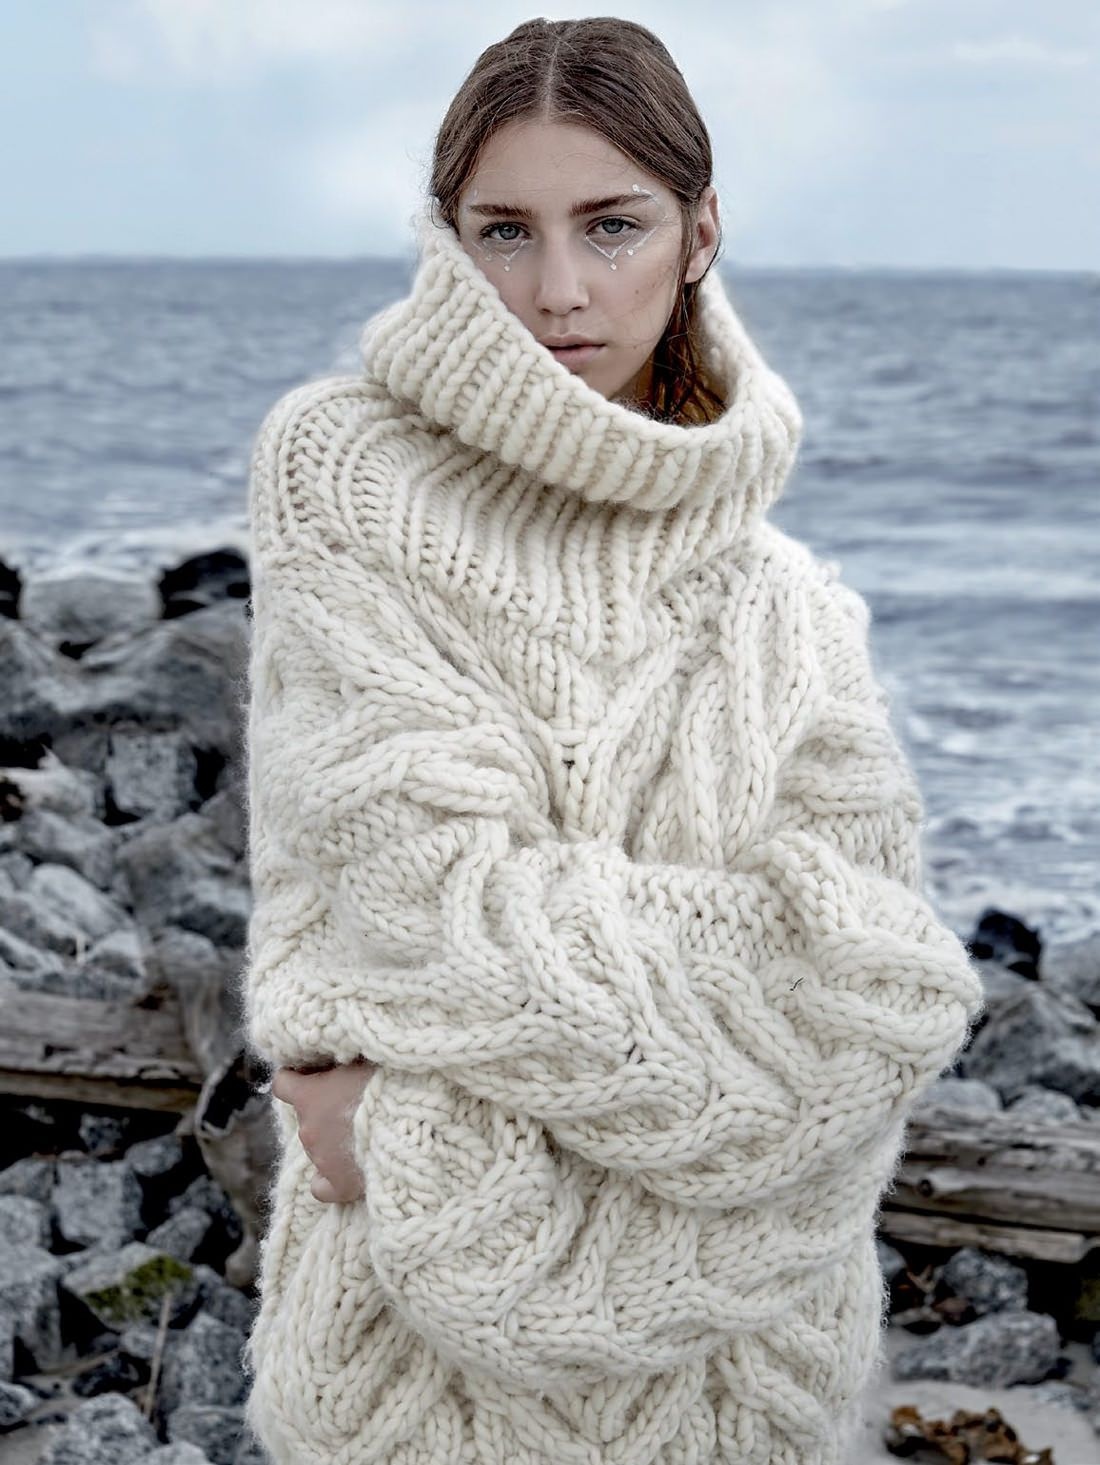 Vogue Russia Oct 2015 #cozycamp | Clothes//Hair//Beauty | Pinterest ...